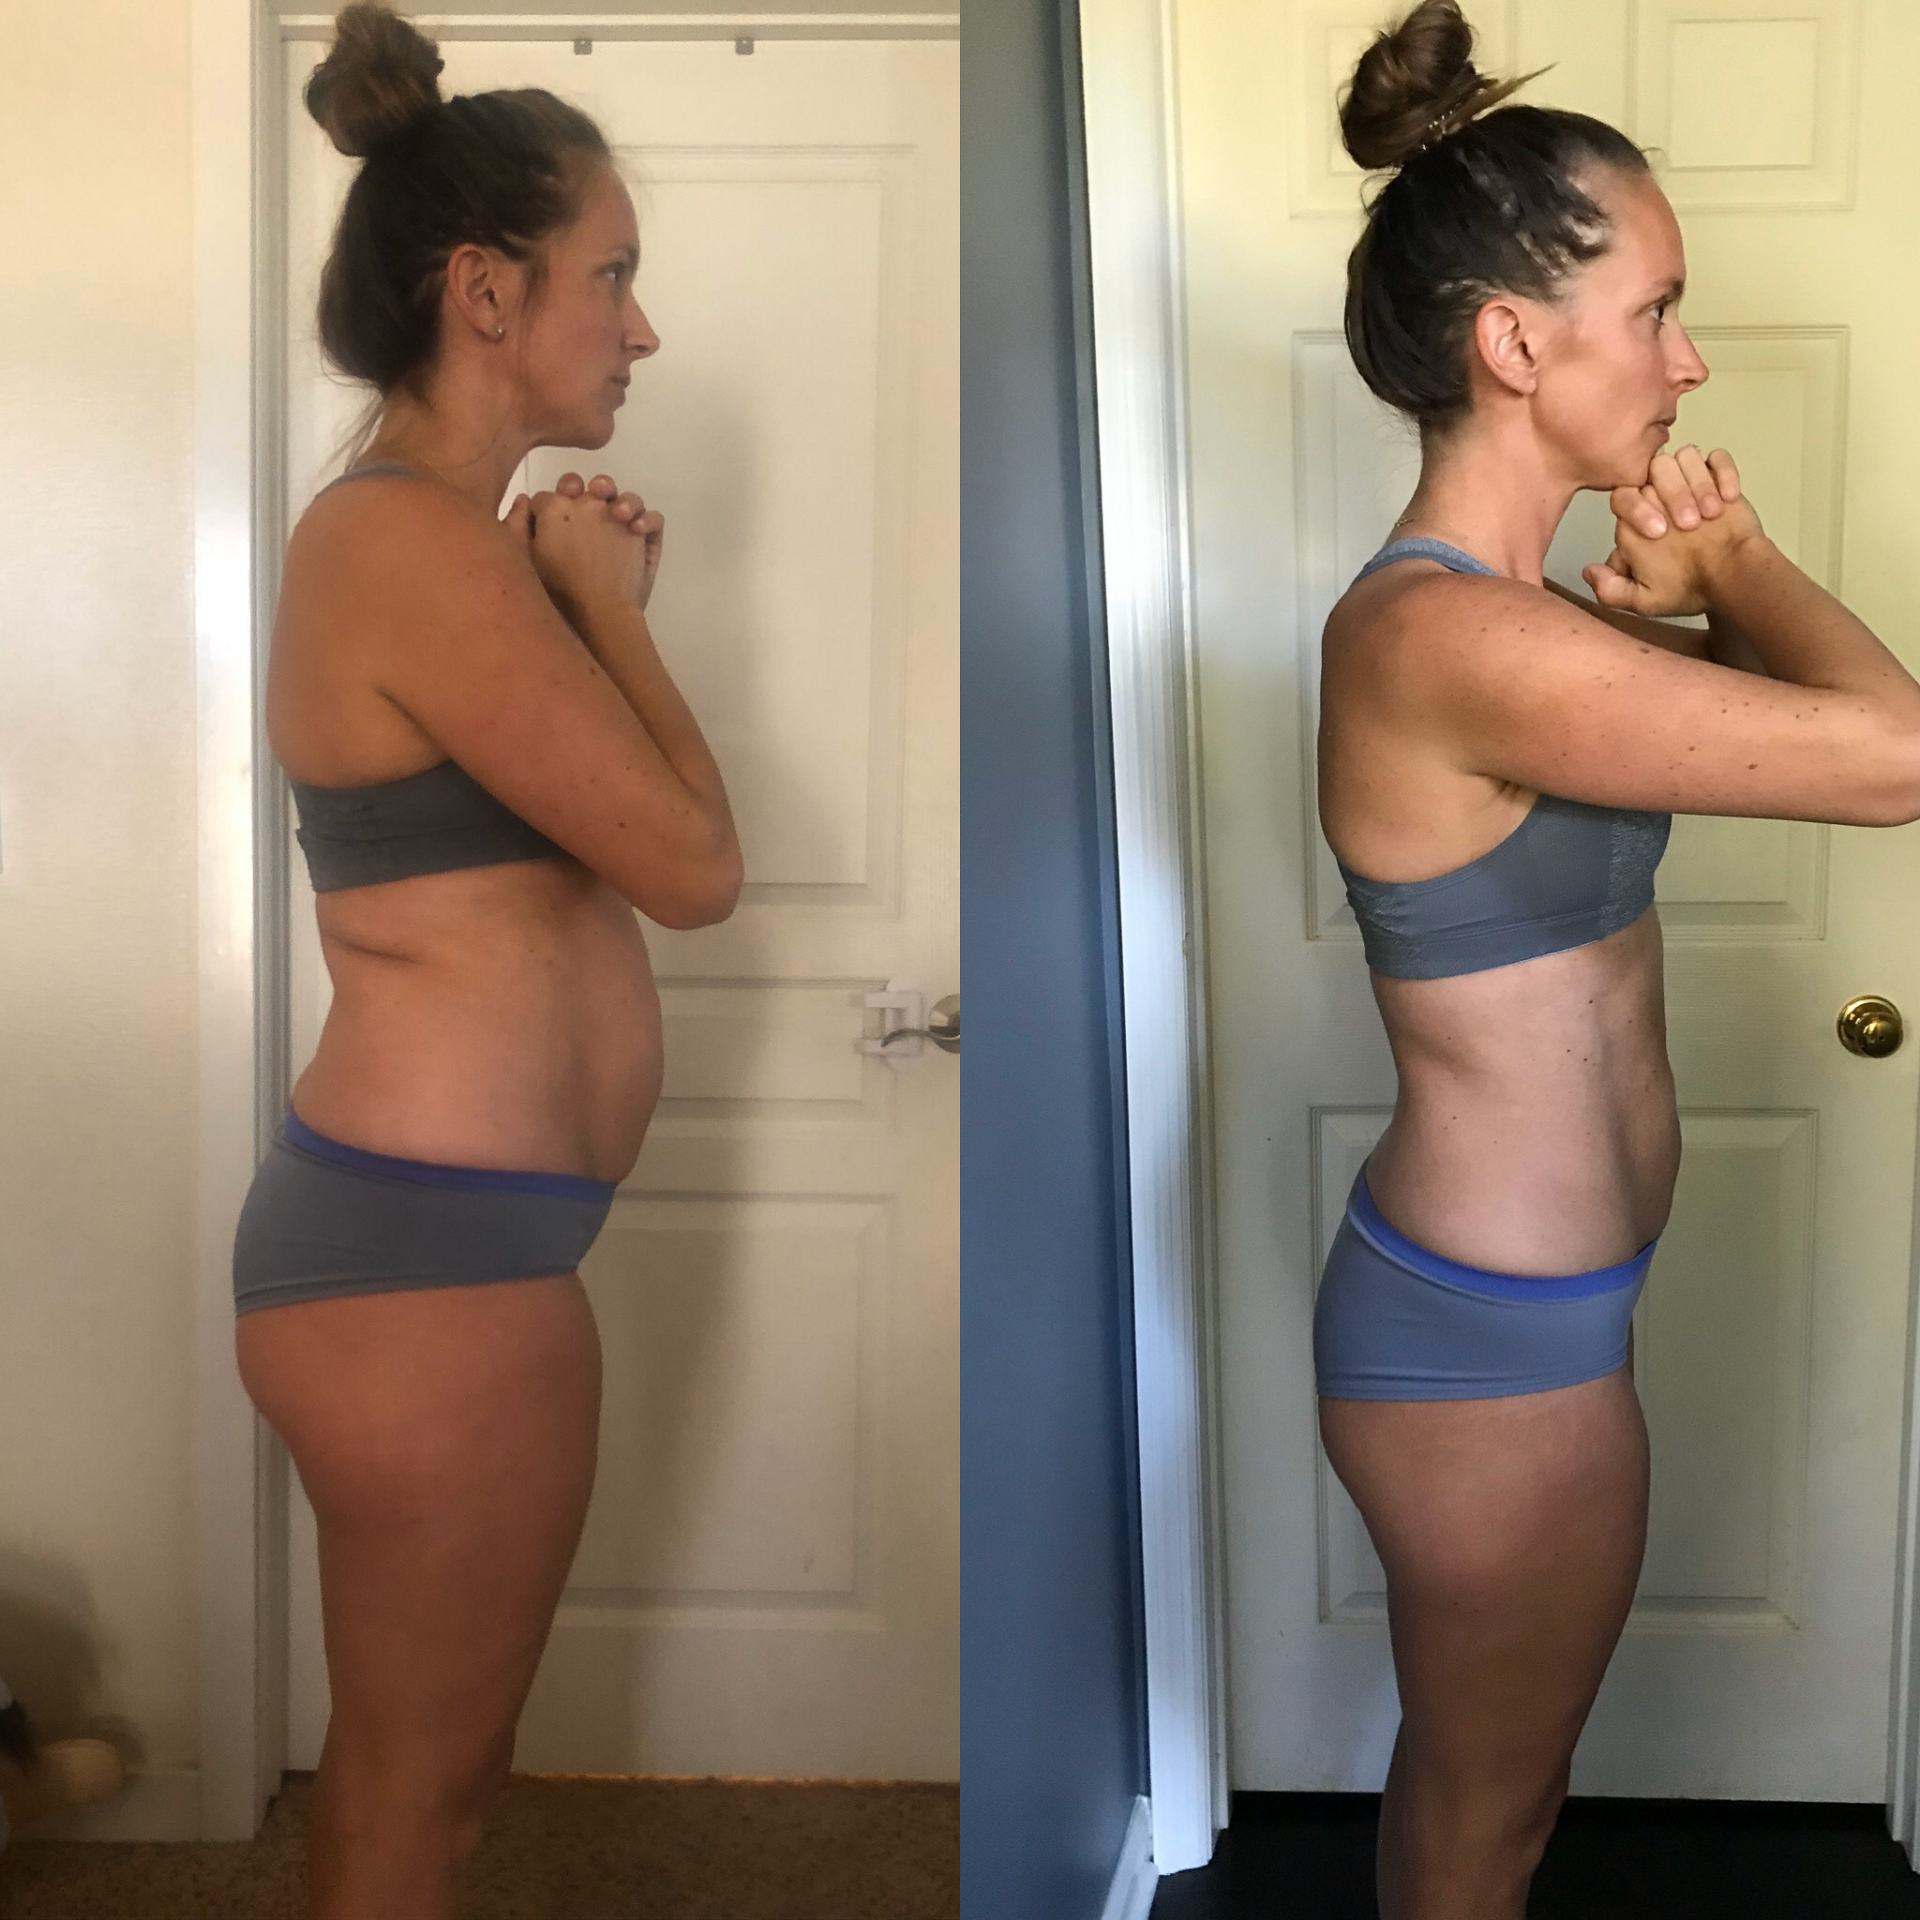 glowbody pt 12 week post pregnancy plan - postpartum fitness - postpartum recovery - post pregnancy fitness - postpartum workout plan - glowbodypt - at home workouts - glowbodypt before and after